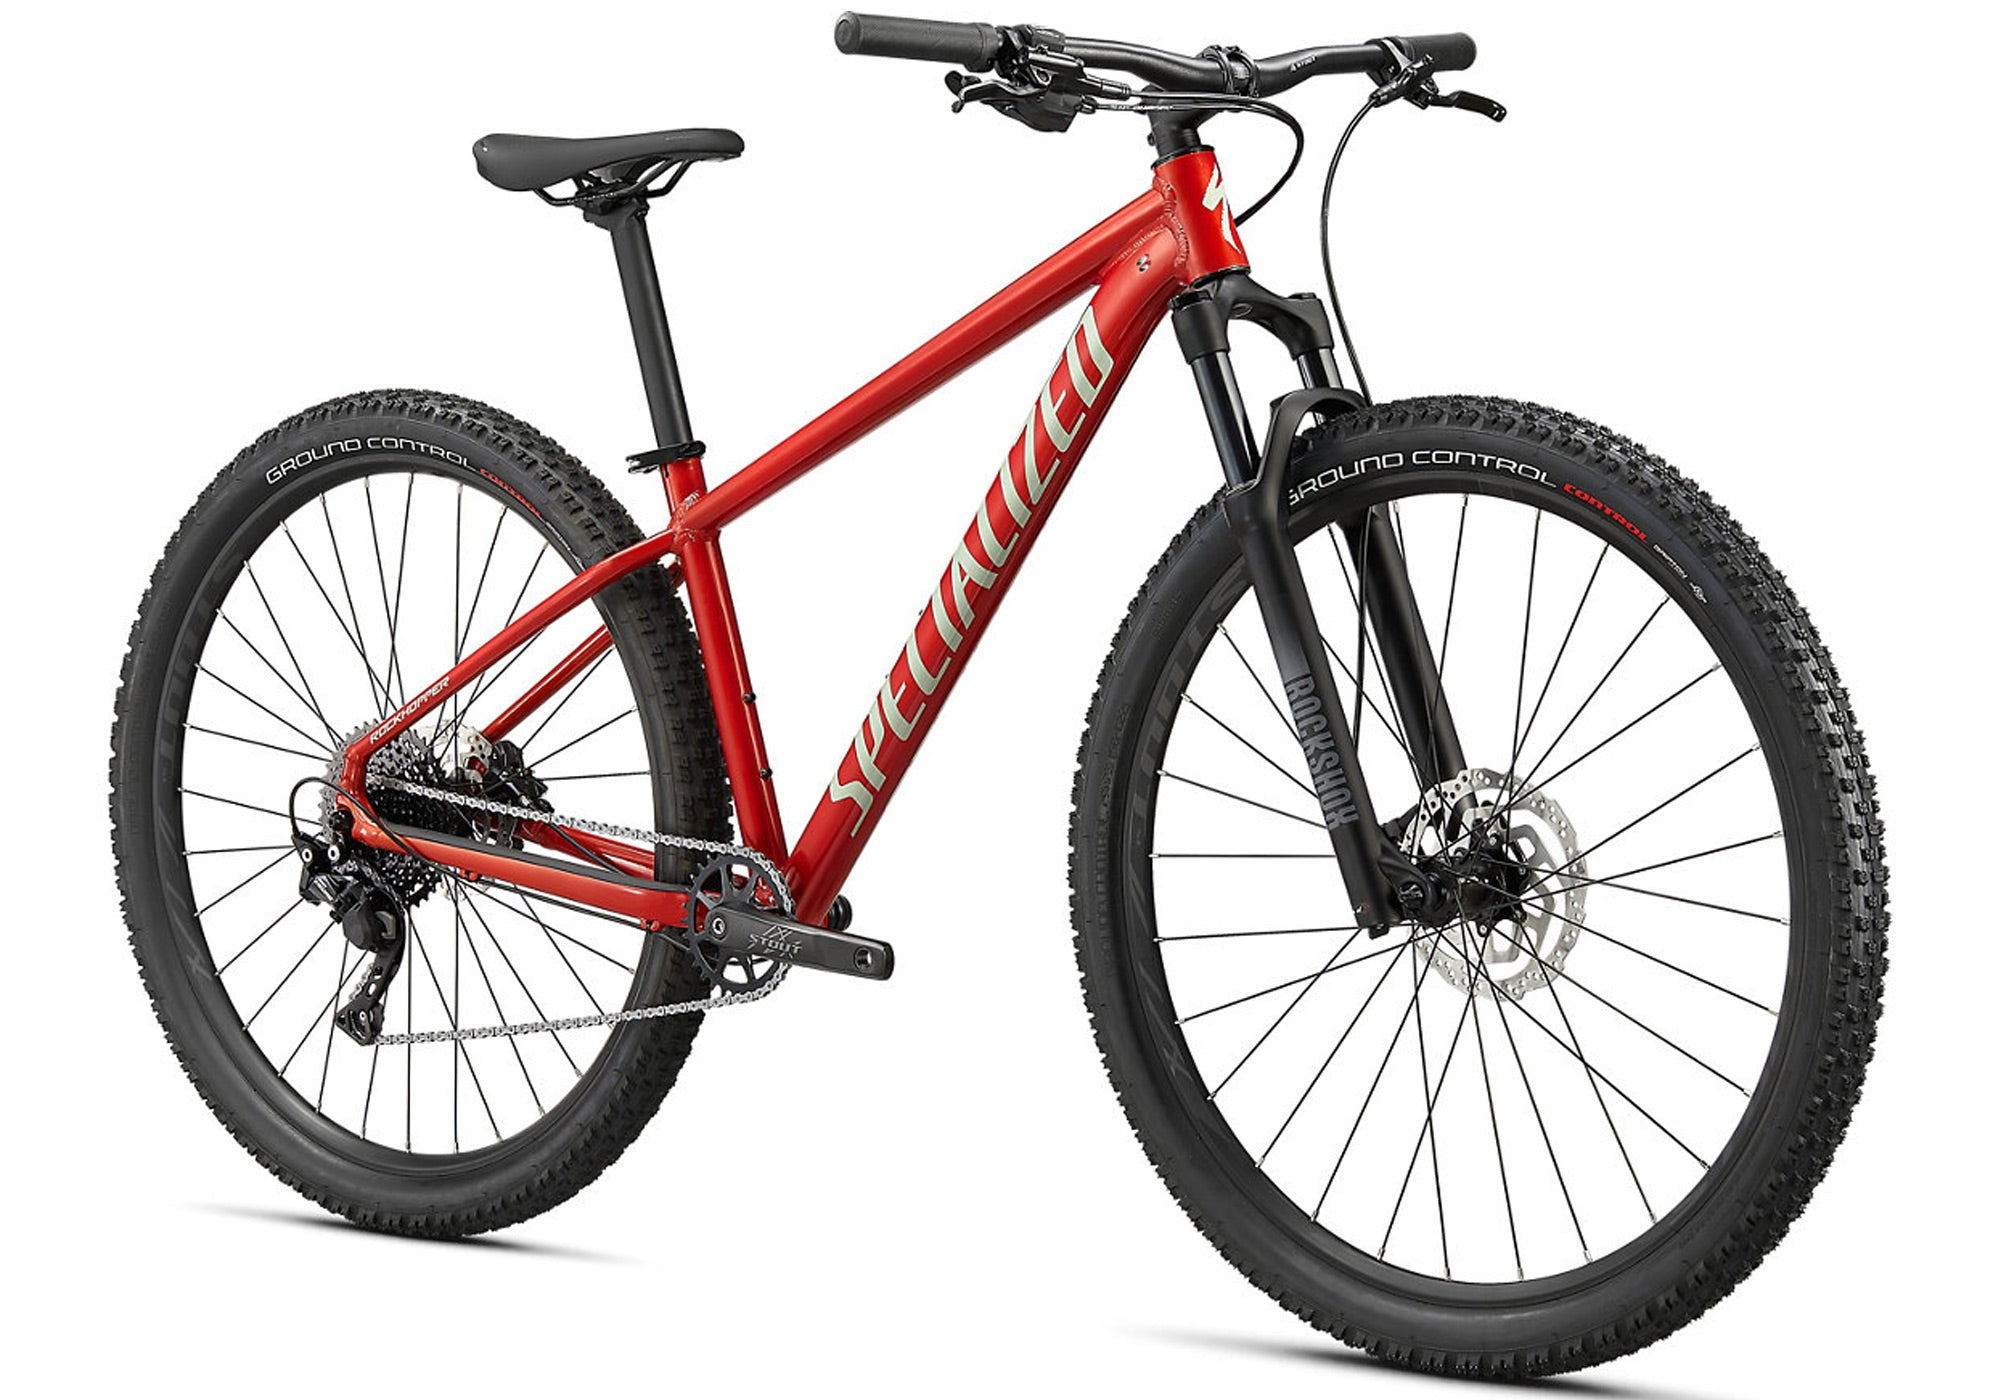 2020 Specialized Rockhopper Elite 27.5 Mountain Bike, Gloss Redwood